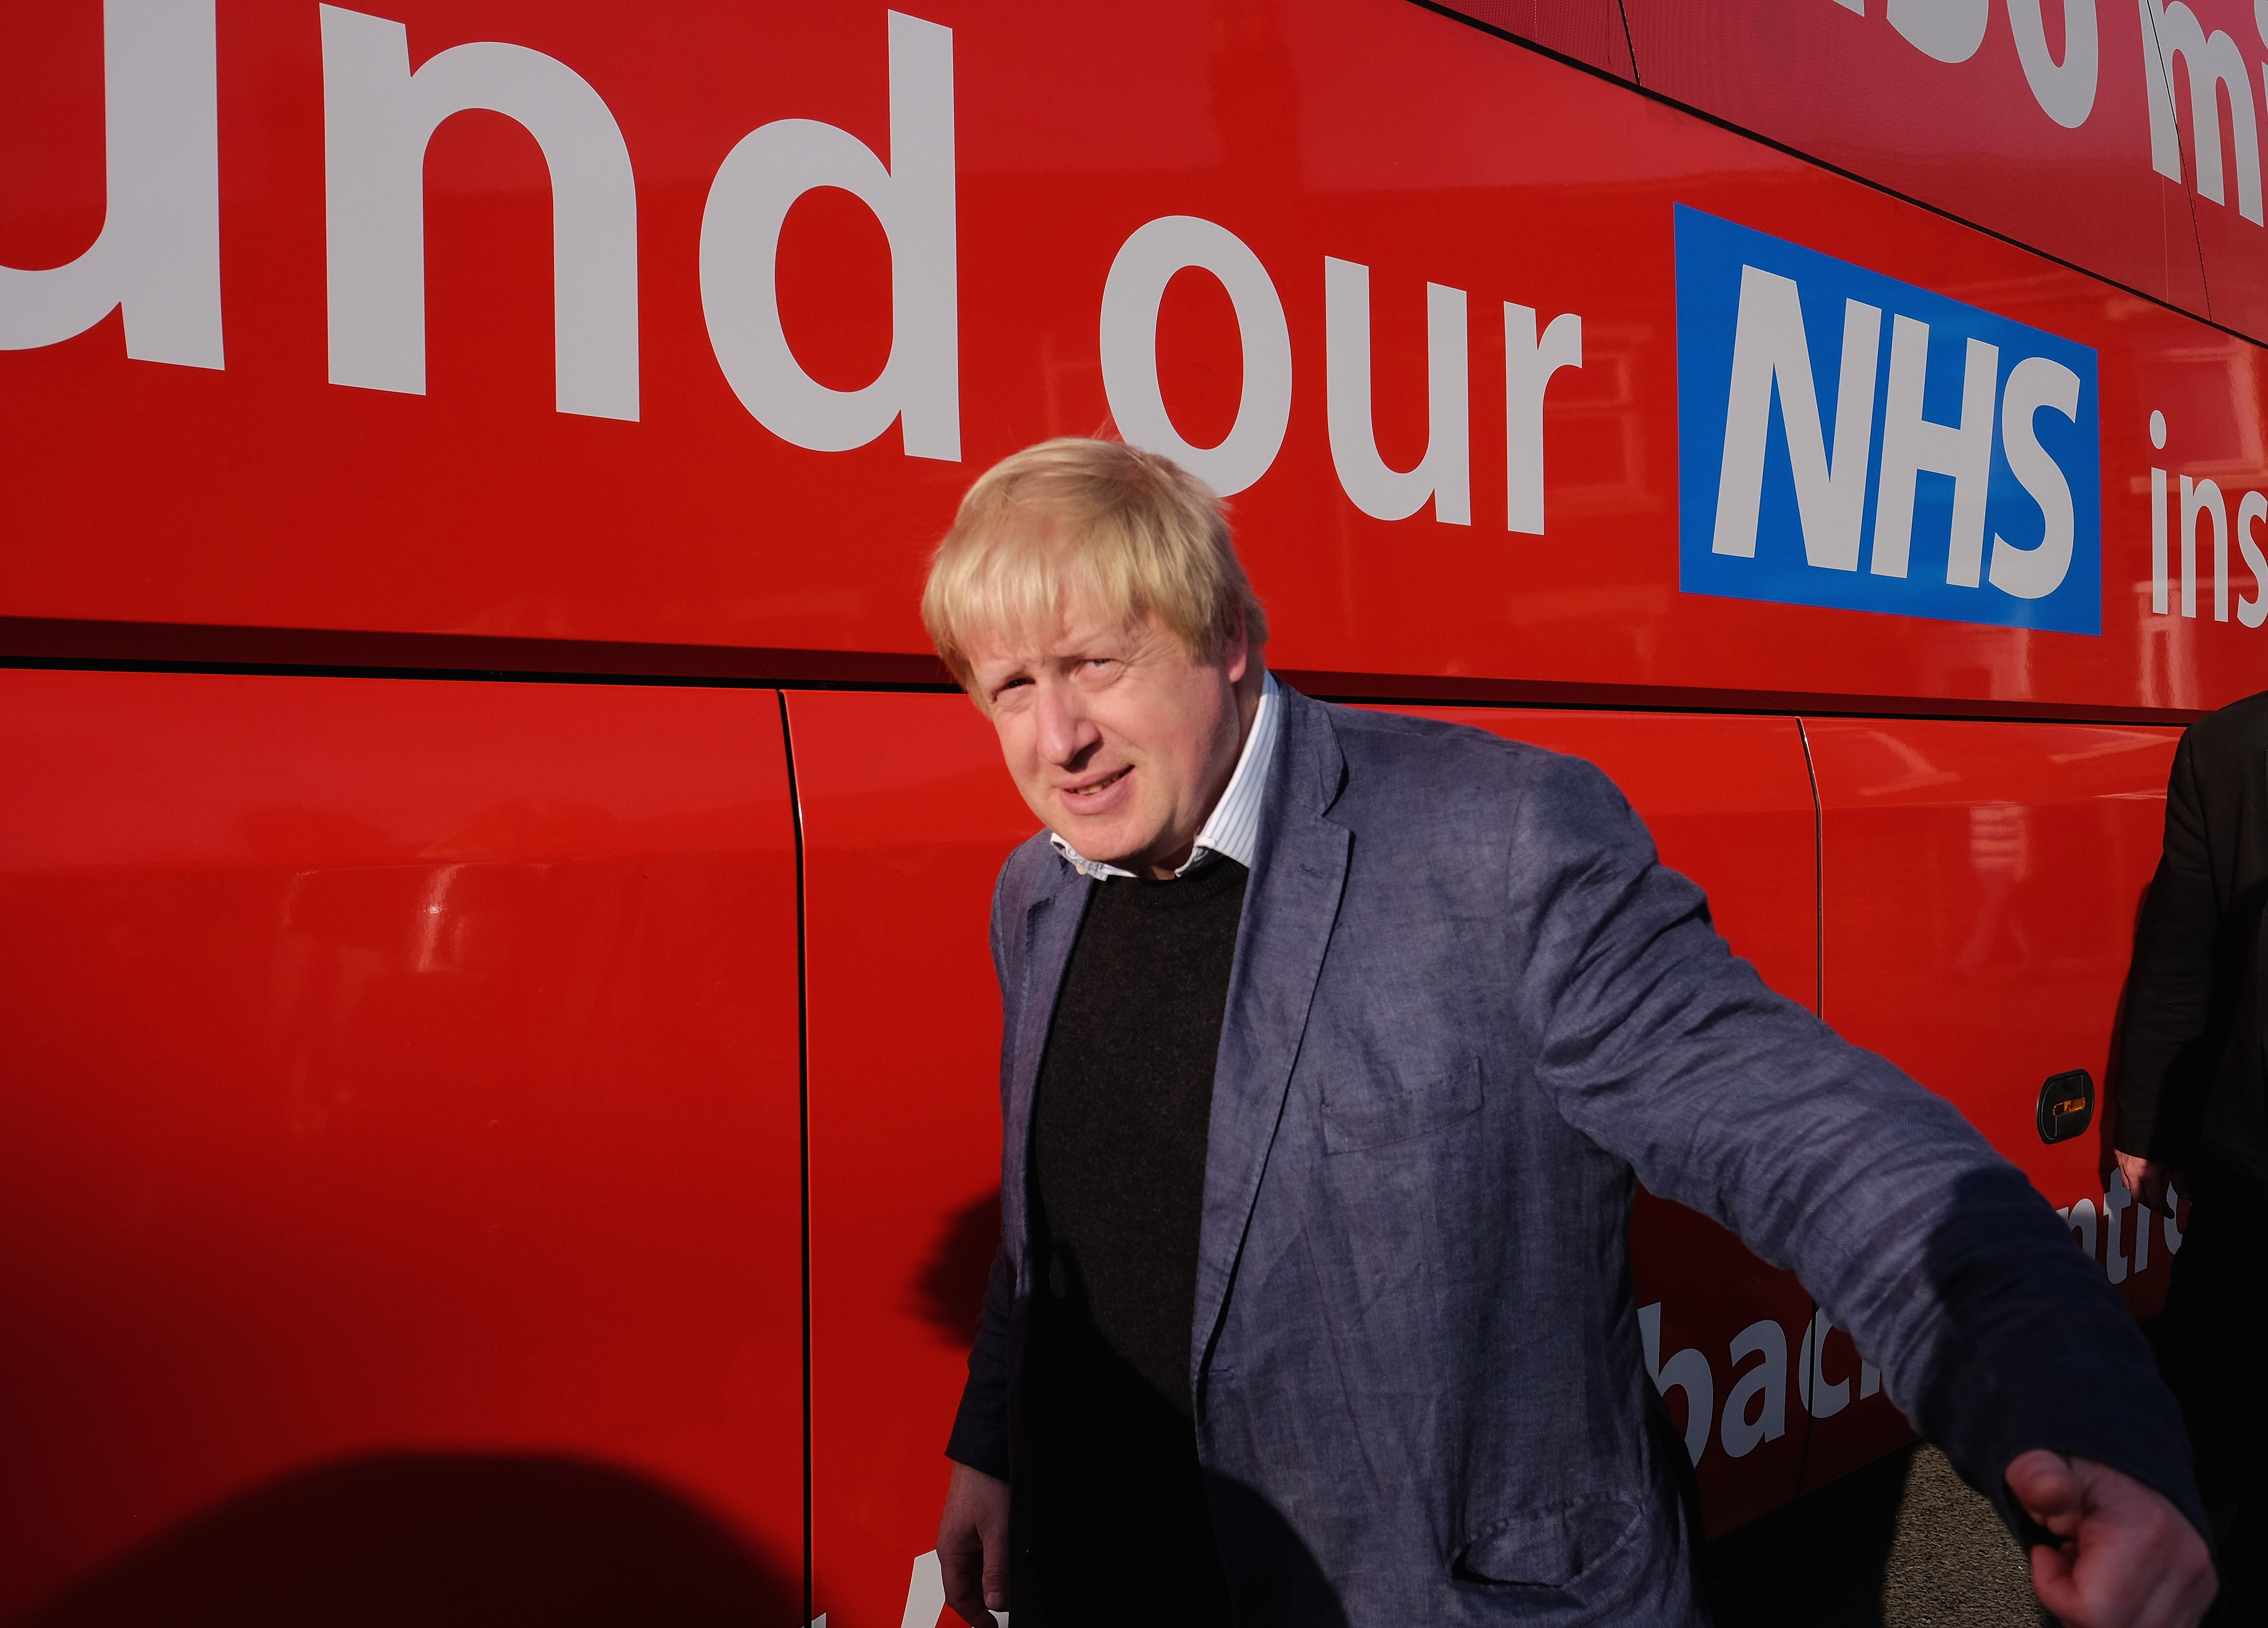 CHESTER-LE-STREET, ENGLAND - MAY 30: Boris Johnson MP walks past the battle bus during a visit Chester-Le-Street Cricket Club as part of the Brexit tour on May 30, 2016 in Chester-Le-Street, England. Boris Johnson and the Vote Leave campaign are touring the UK in their Brexit Battle Bus on a campaign hoping to persuade voters to back leaving the European Union in the June 23rd referendum. (Photo by Ian Forsyth/Getty Images)